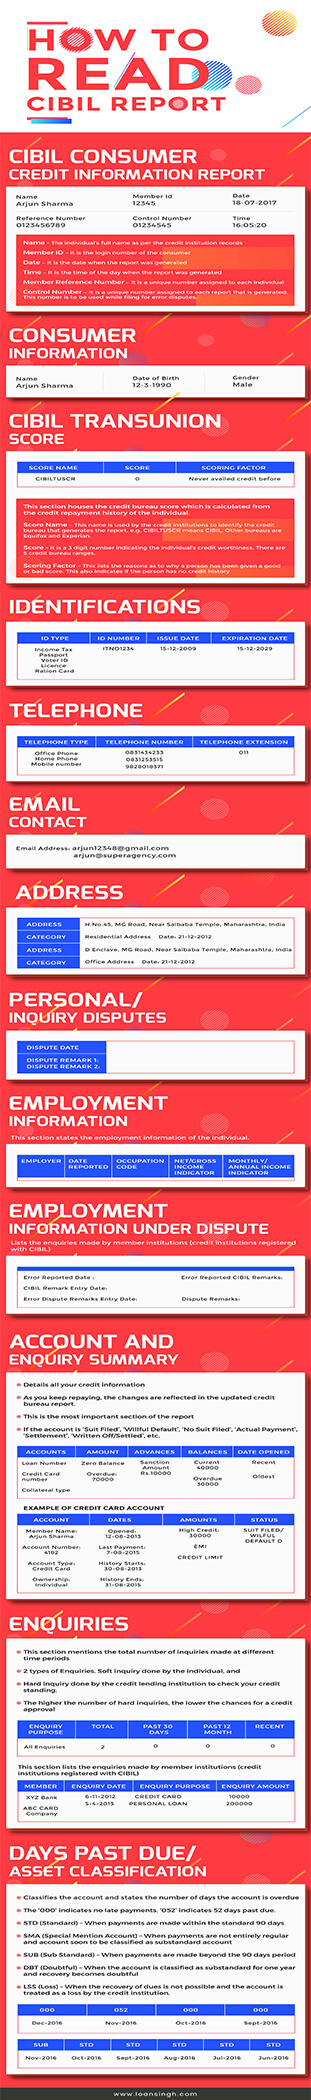 Loan Singhu0027s latest infographic shows a custom template of a - credit report template